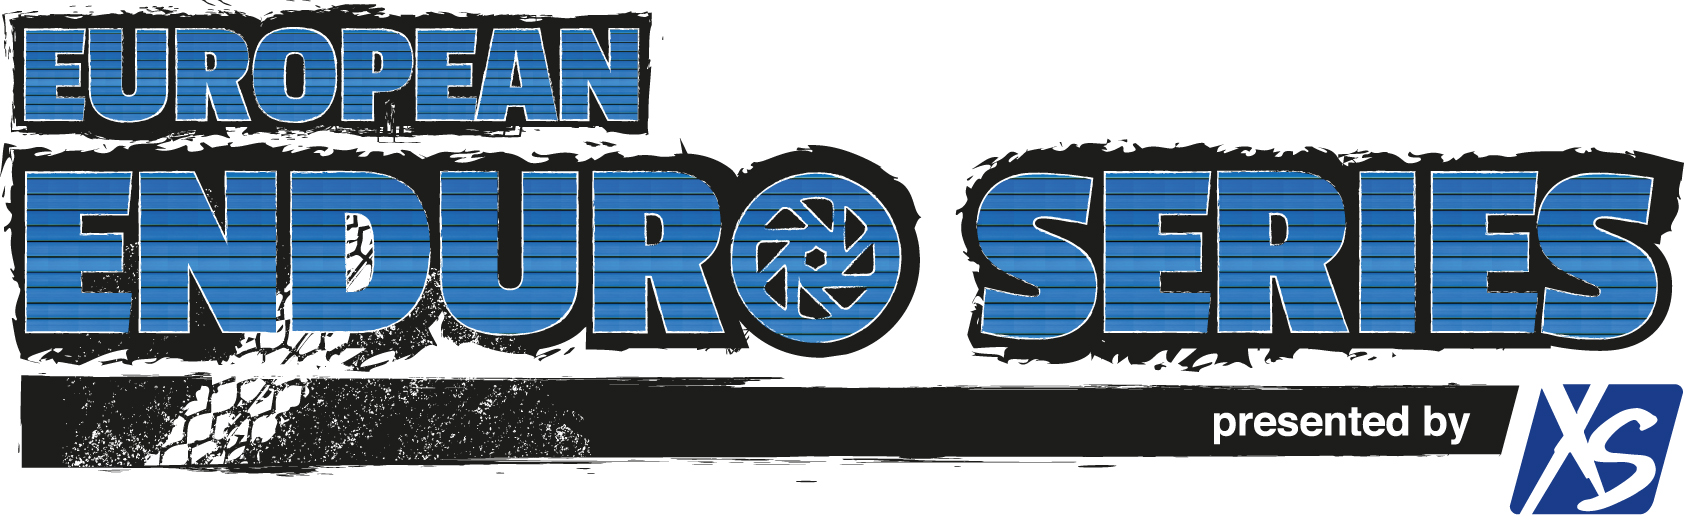 European_Enduro_Series_Logo_white_cmyk01.eps